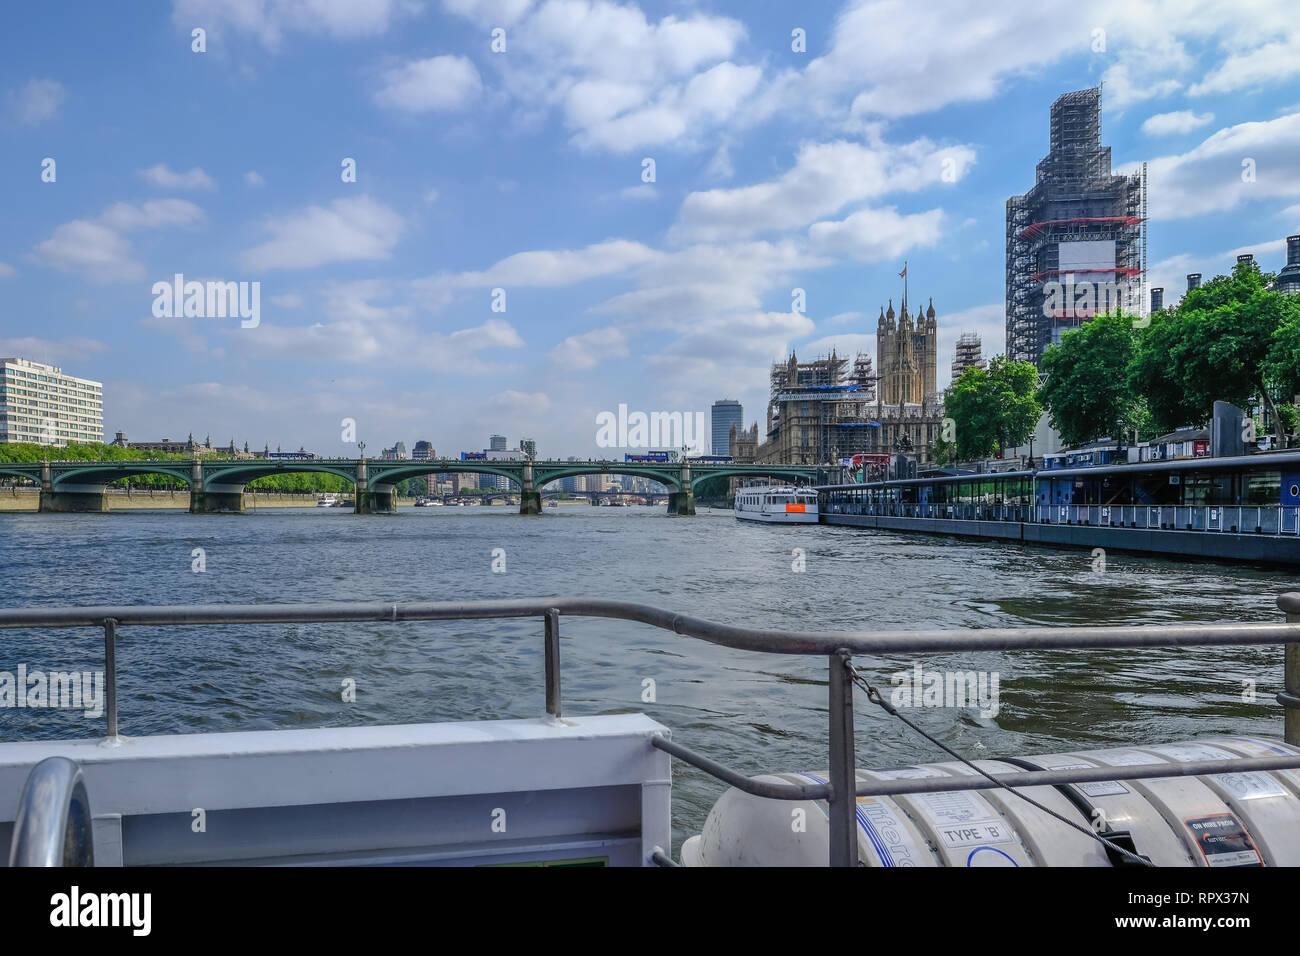 Westminster, London, uk - June 8, 2018: Viewof Westminter bridge with Big Ben under renovation and Houses of Parliament.  Taken from a clipper in the  Stock Photo